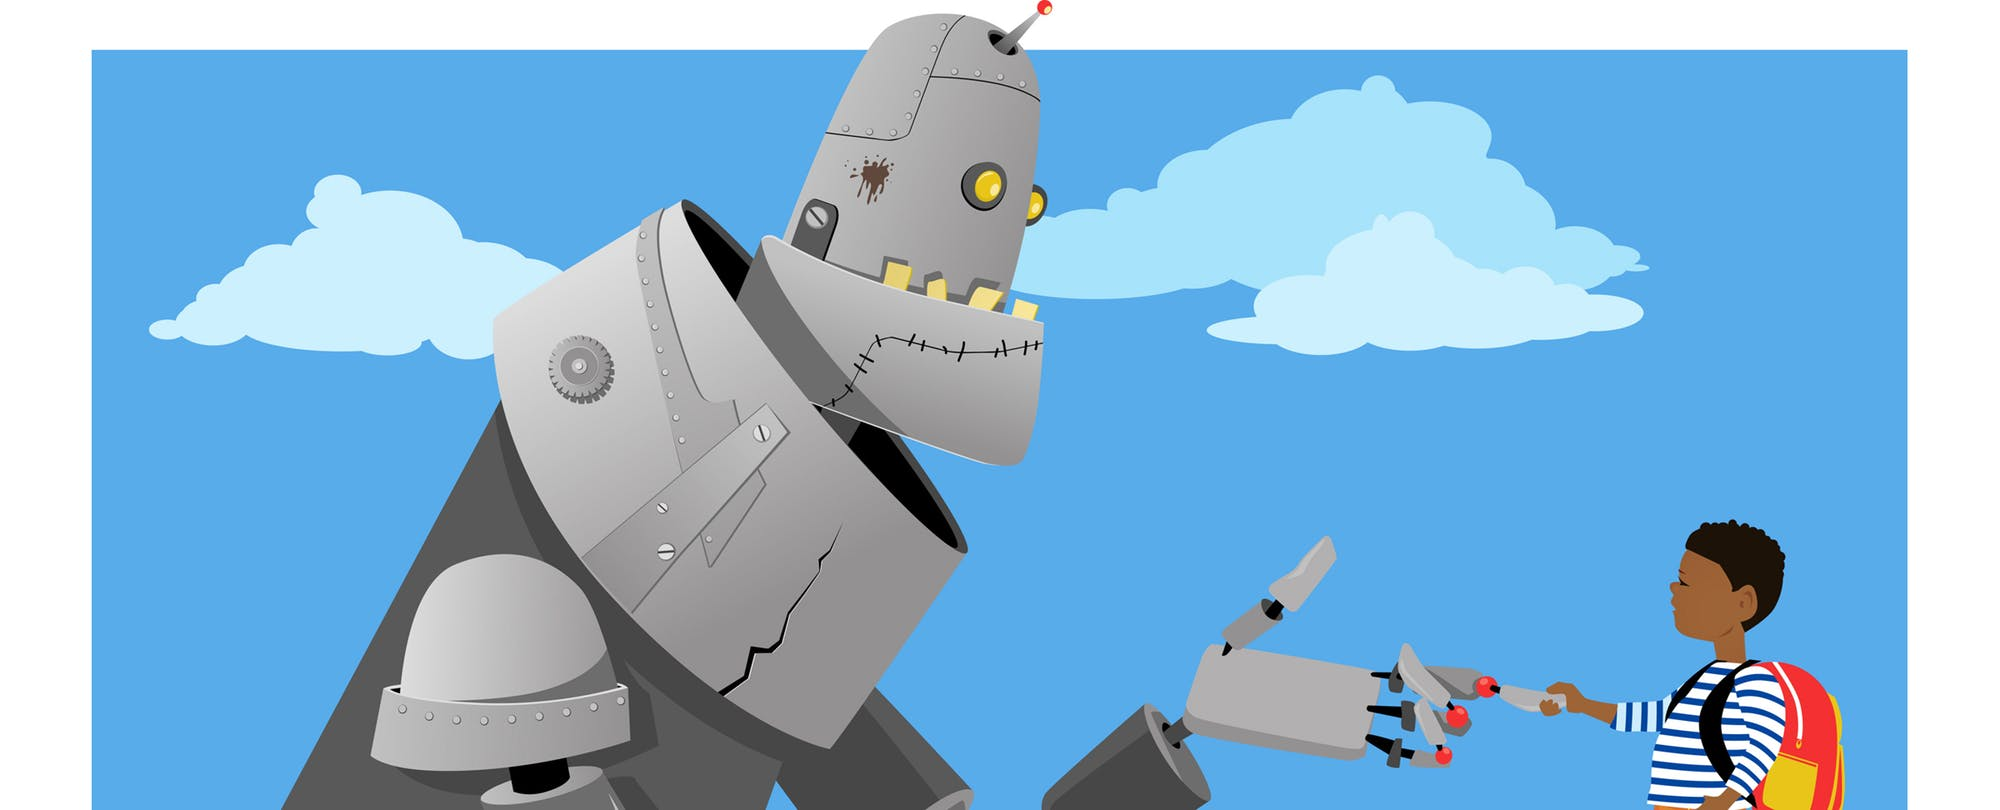 Real Questions About Artificial Intelligence in Education